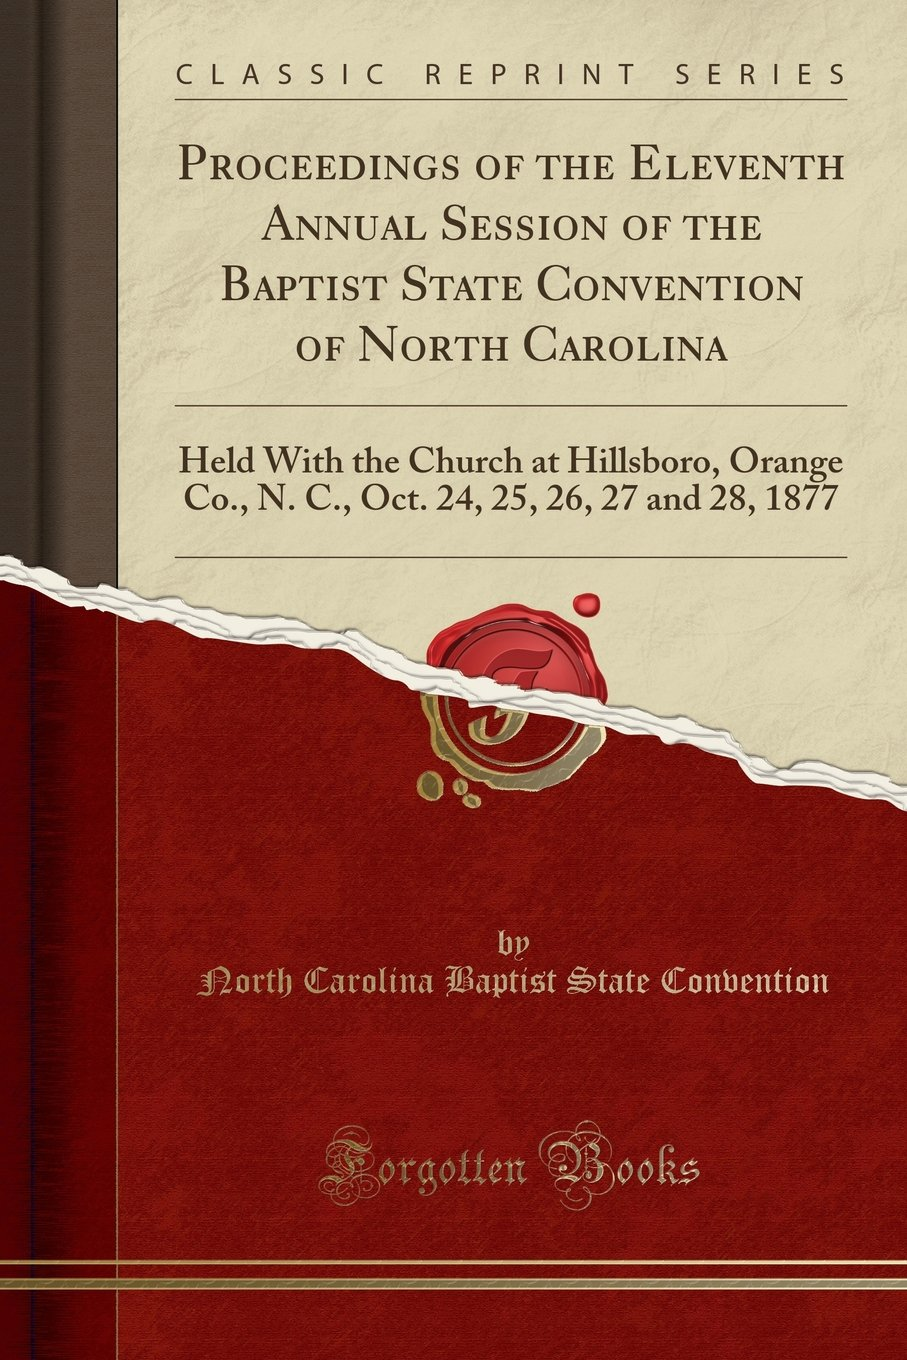 Proceedings of the Eleventh Annual Session of the Baptist State Convention of North Carolina: Held With the Church at Hillsboro, Orange Co., N. C., Oct. 24, 25, 26, 27 and 28, 1877 (Classic Reprint) ebook